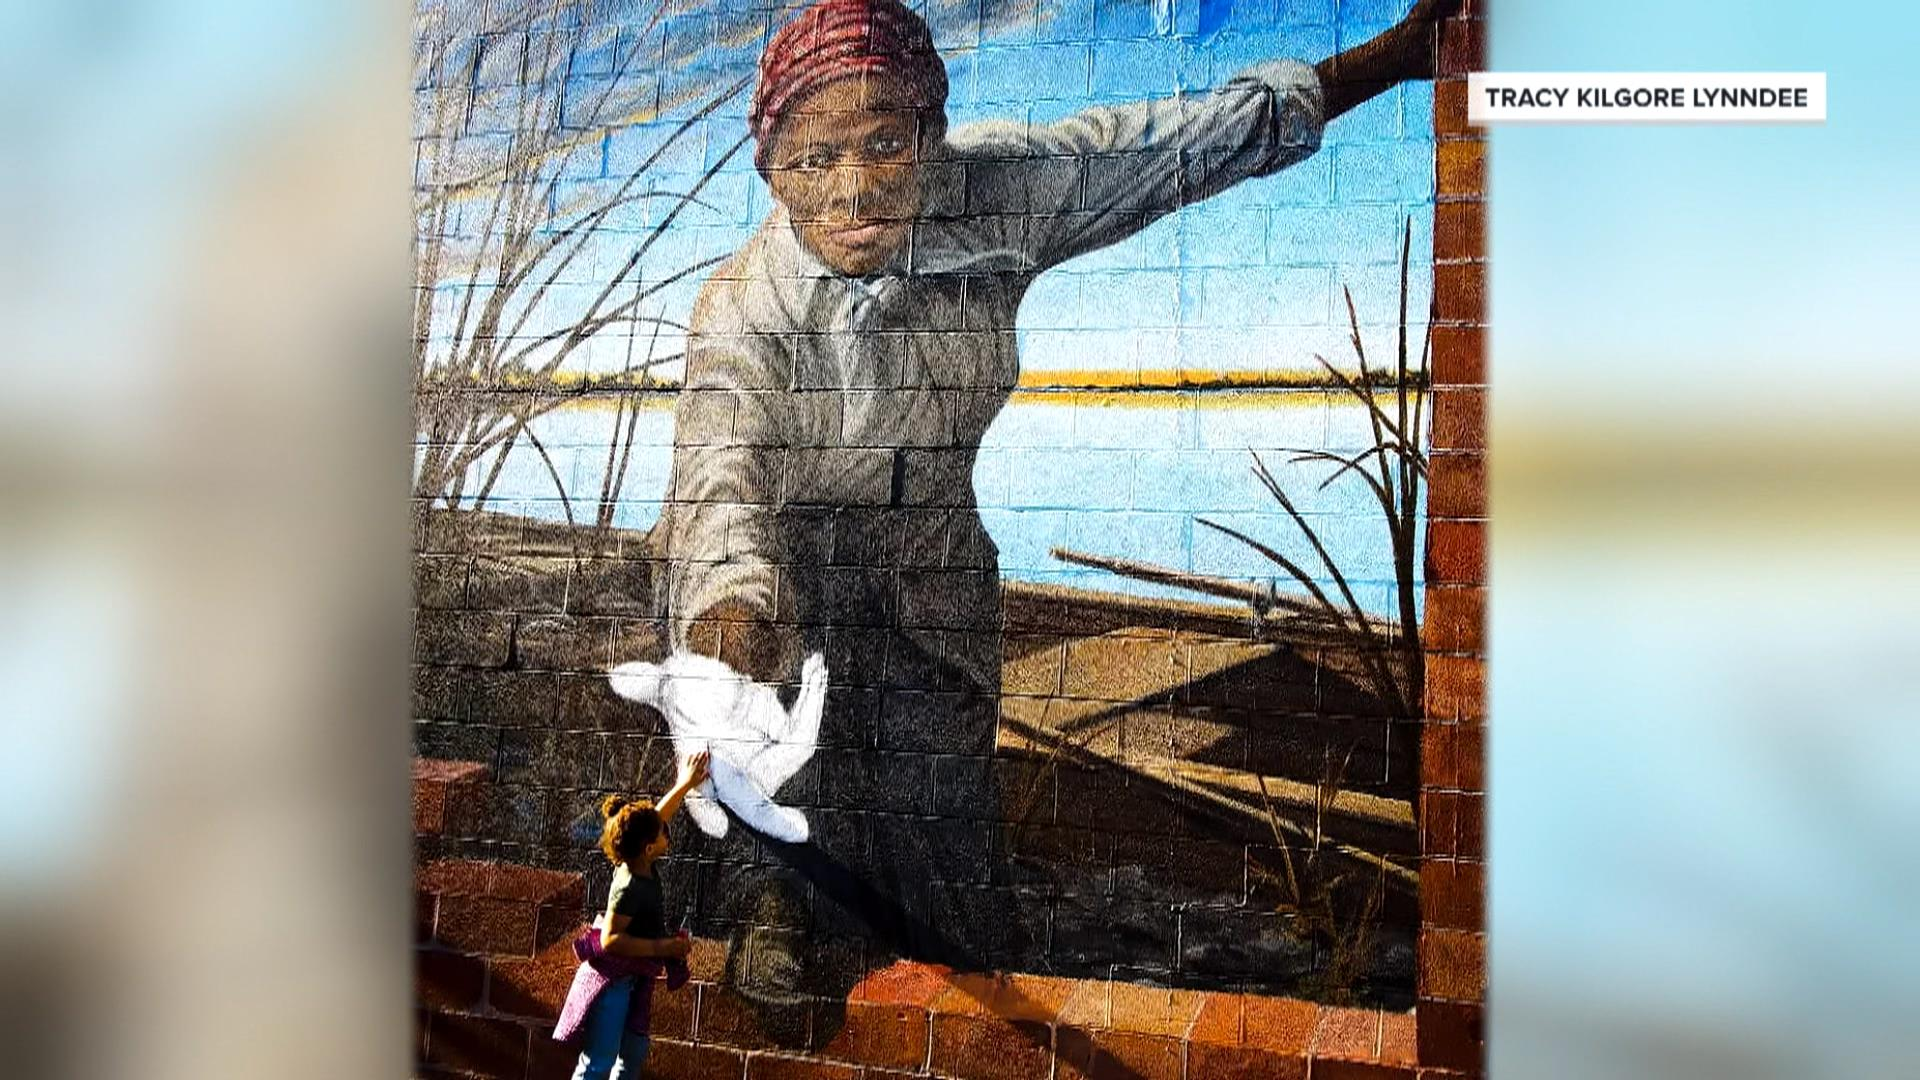 Girl reaches out to Harriet Tubman mural in viral photo, and more Highs and Lows